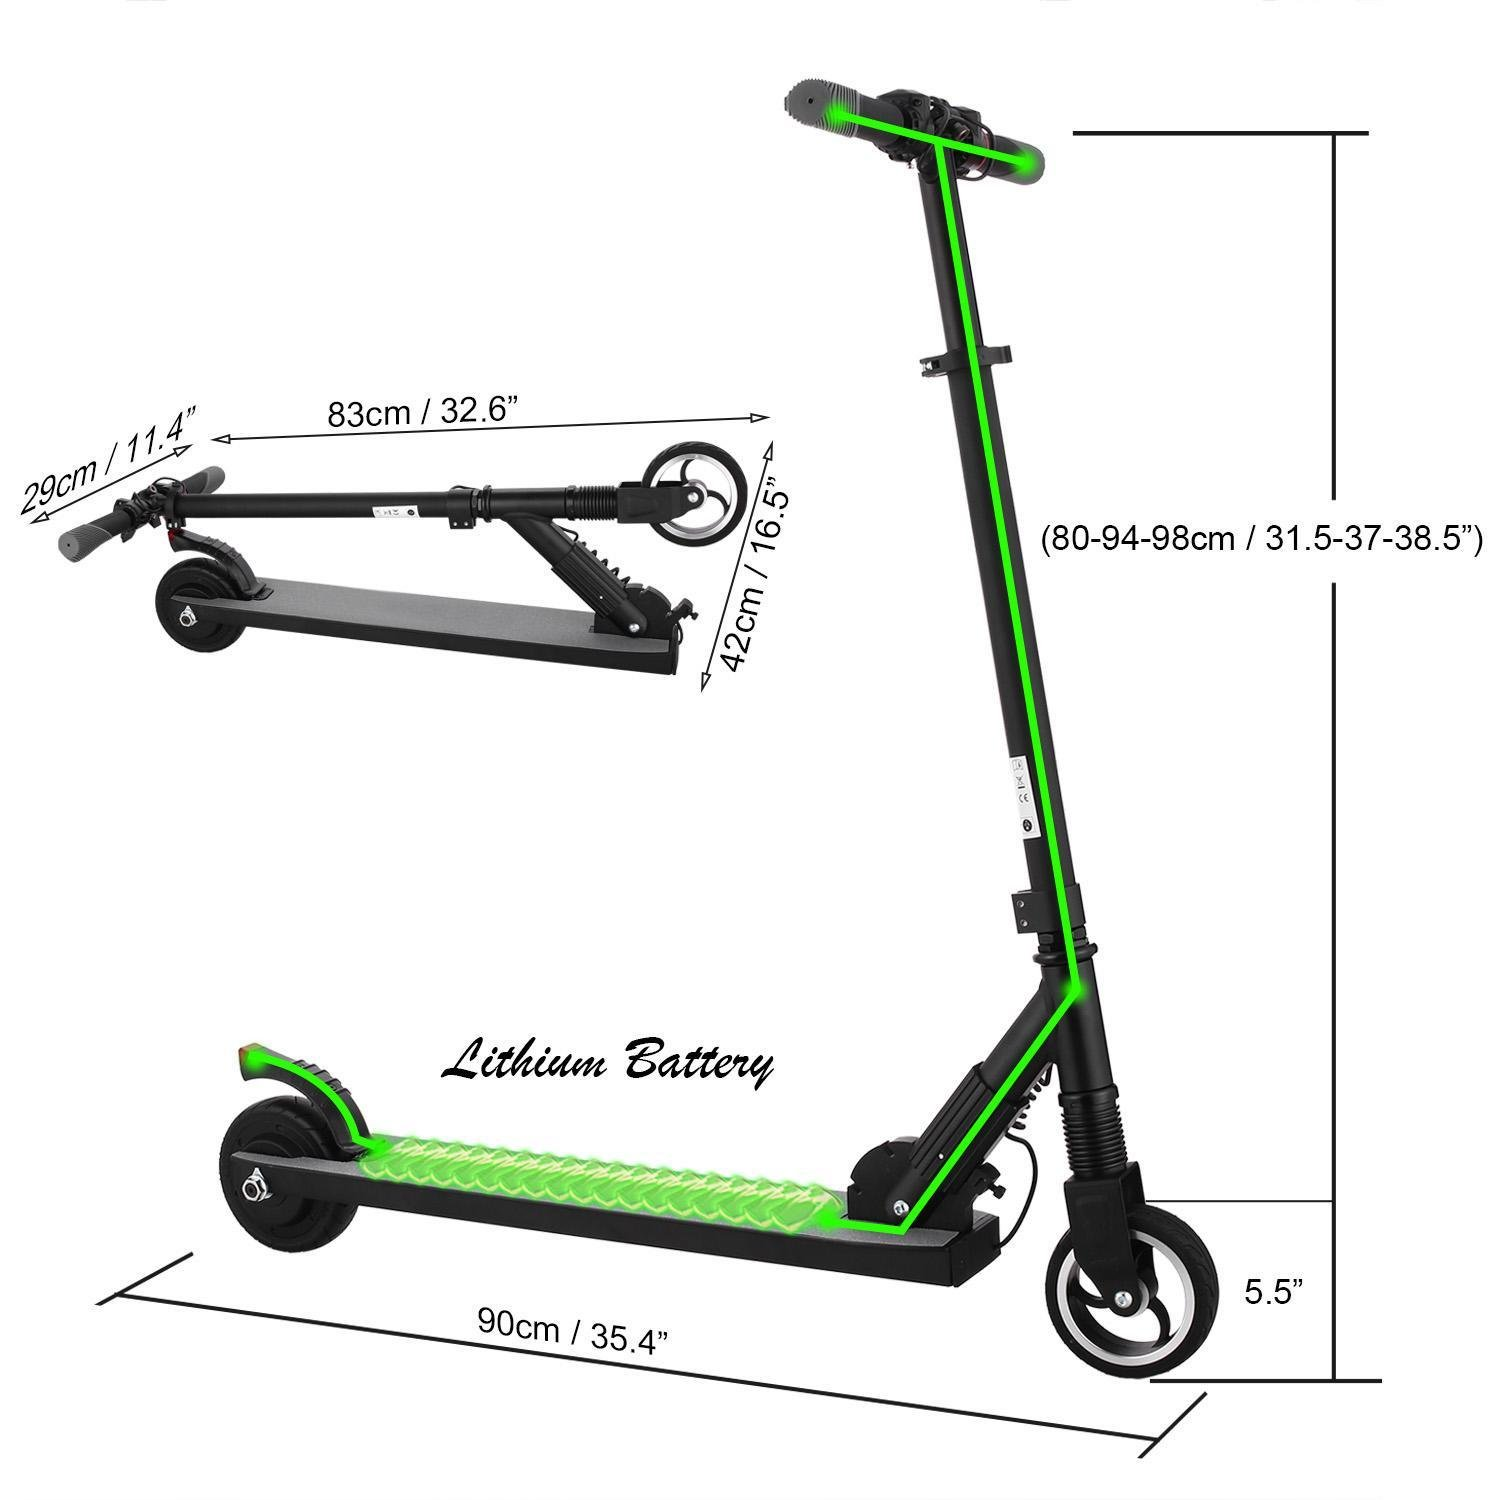 Electric Scooter for Teens & Adult, Portable Folding Commuter Scooter, Up to 14mph, Endurance 8-10km, Suit Riders 145-175cm